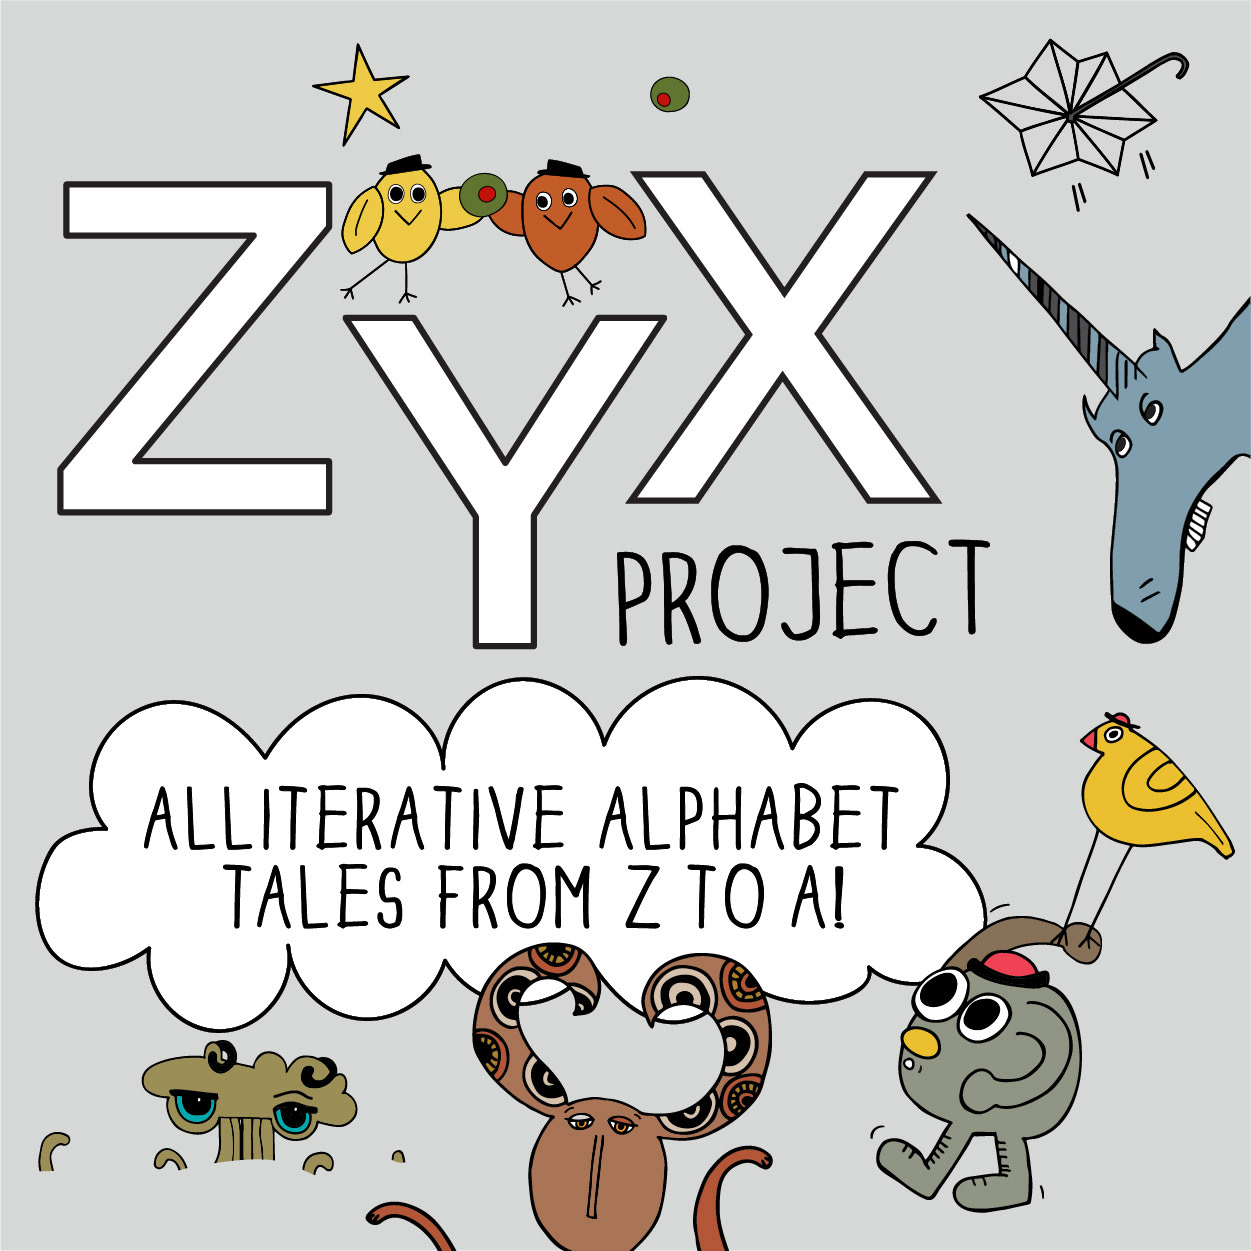 ZYX Project: Kooky Alphabet Stories from Z to A!